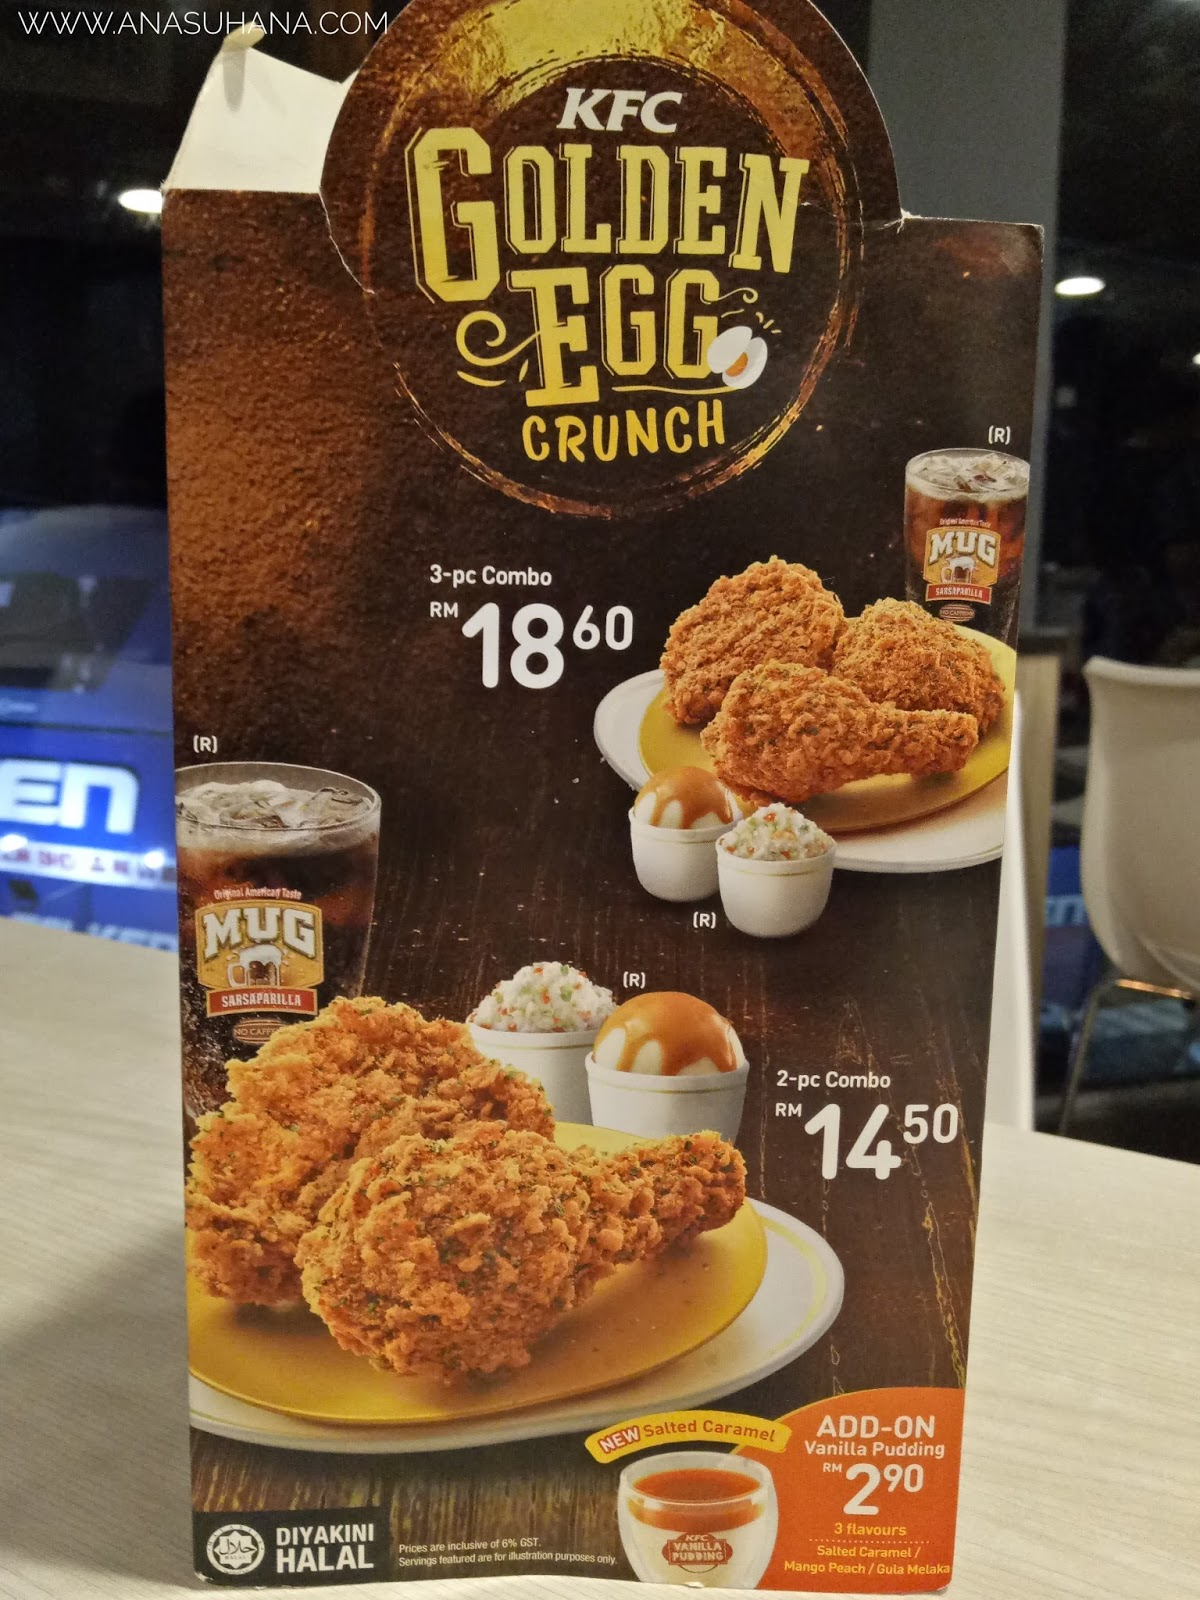 KFC Golden Egg Crunch